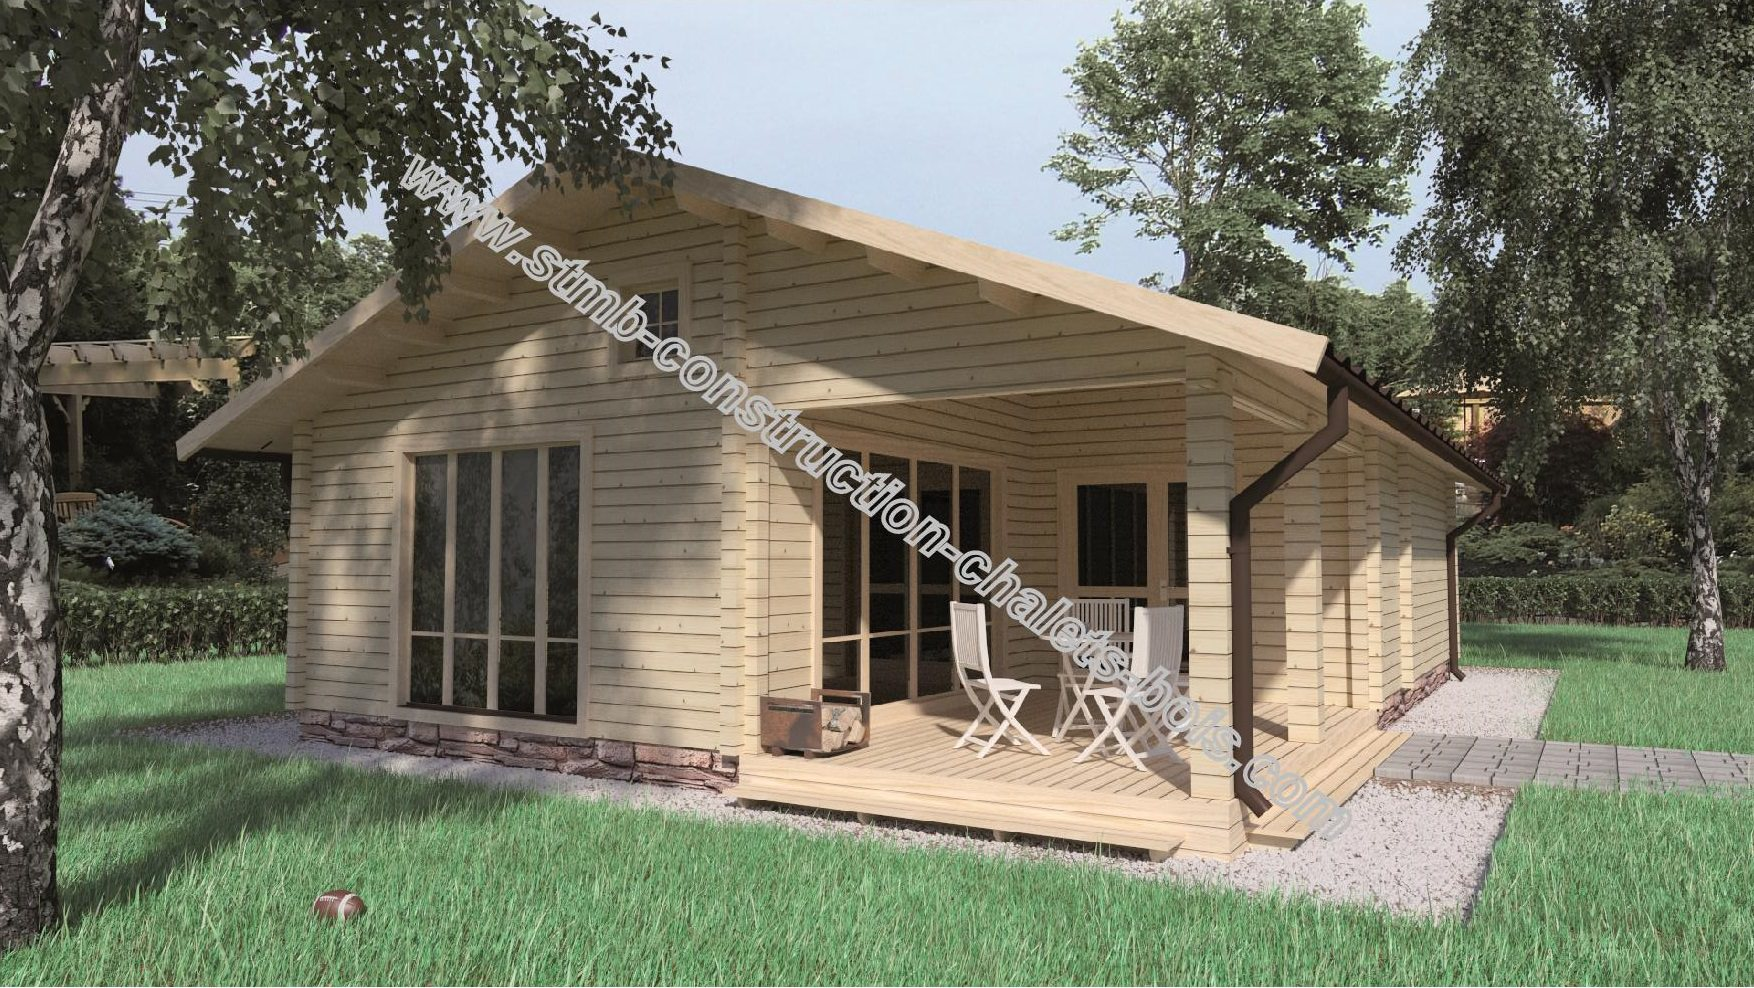 Construction Maison Bois En Kit - Construction Bois Kit u2013 Mzaol com